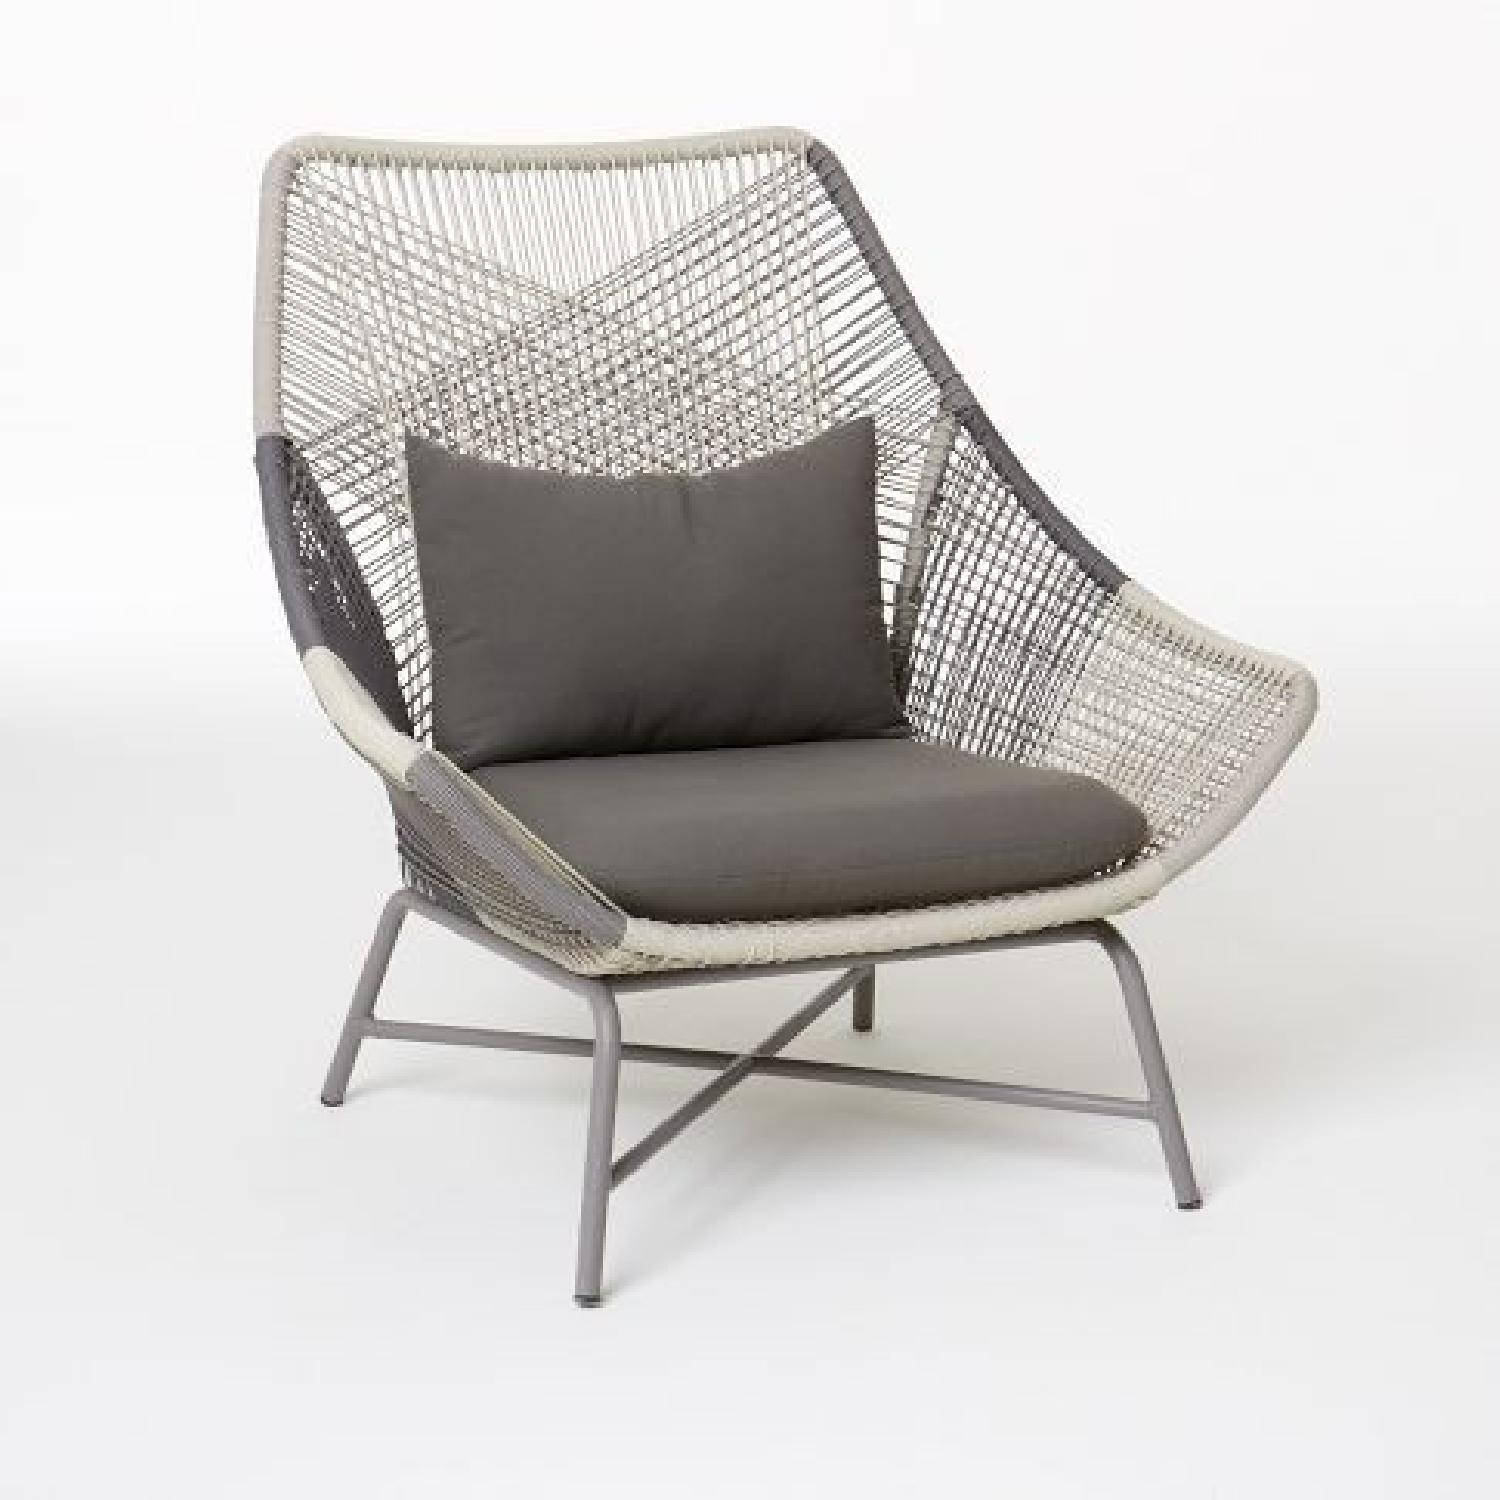 West Elm Huron Outdoor Lounge Chair & Ottoman - image-6